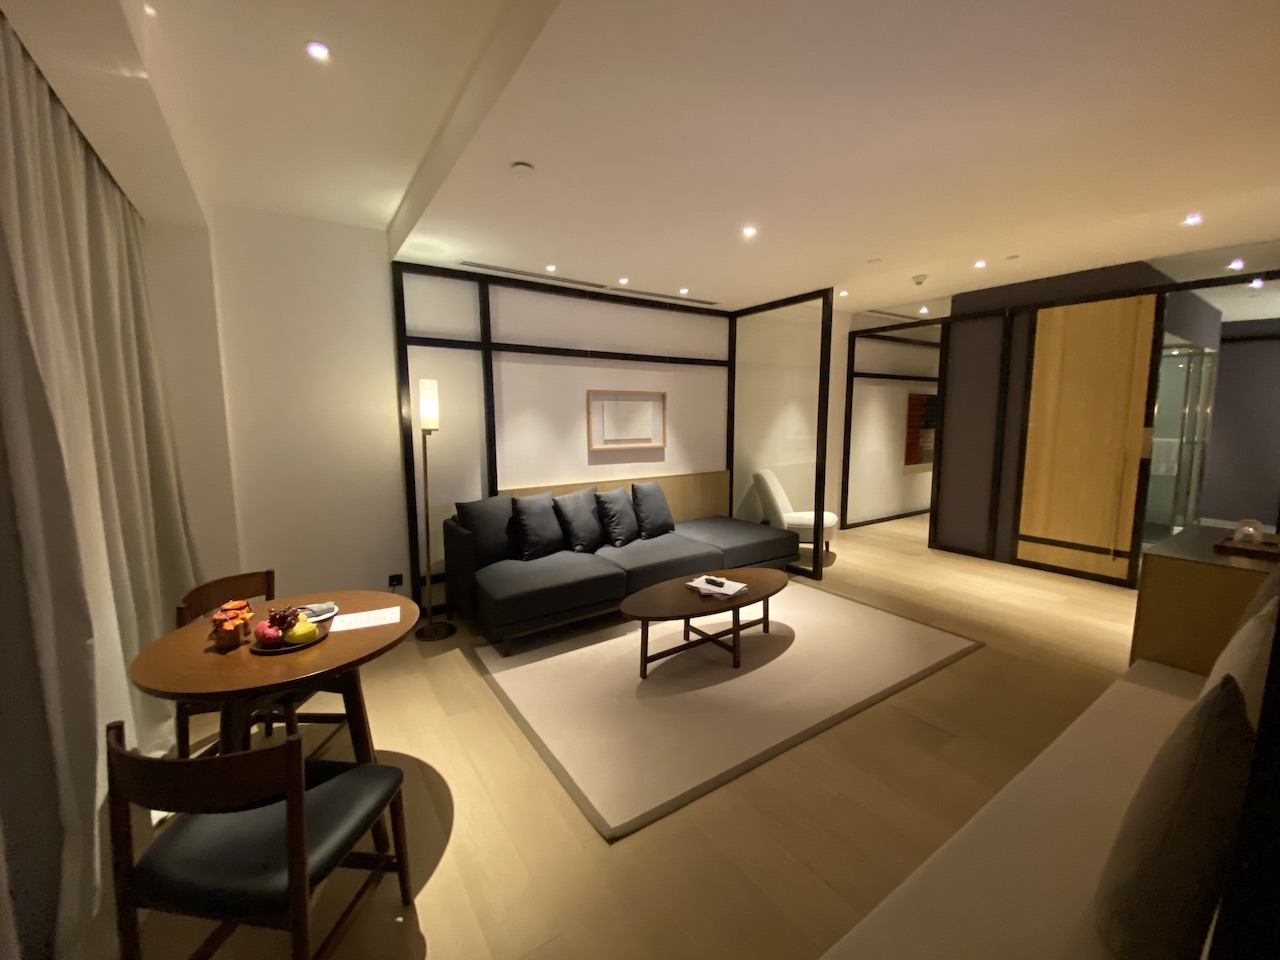 Hyatt Alila Bangasar suite living room with dining table